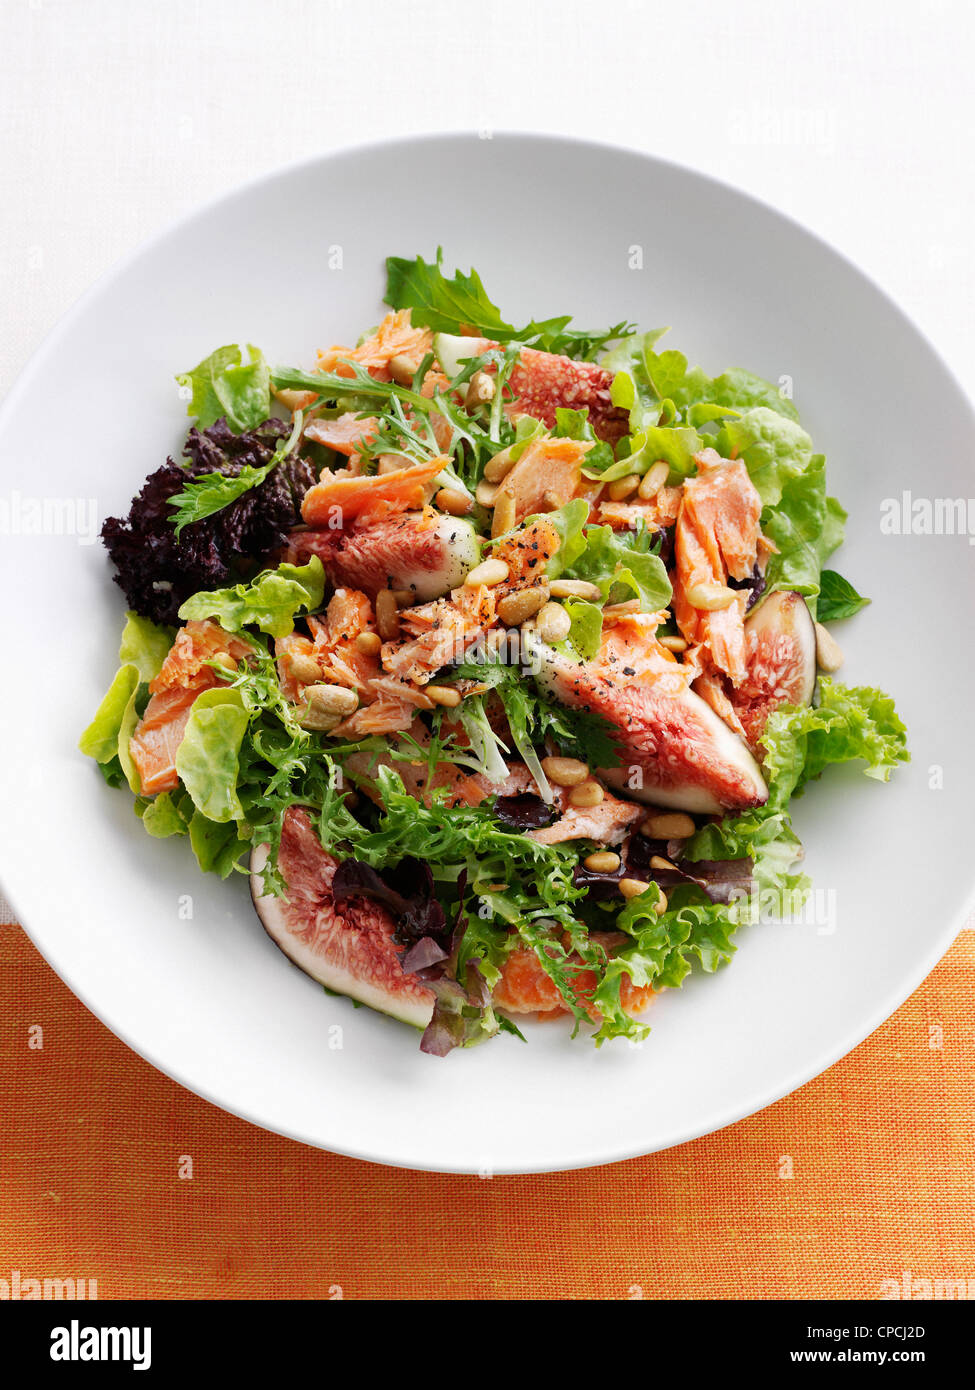 Plate of fish and fig salad - Stock Image